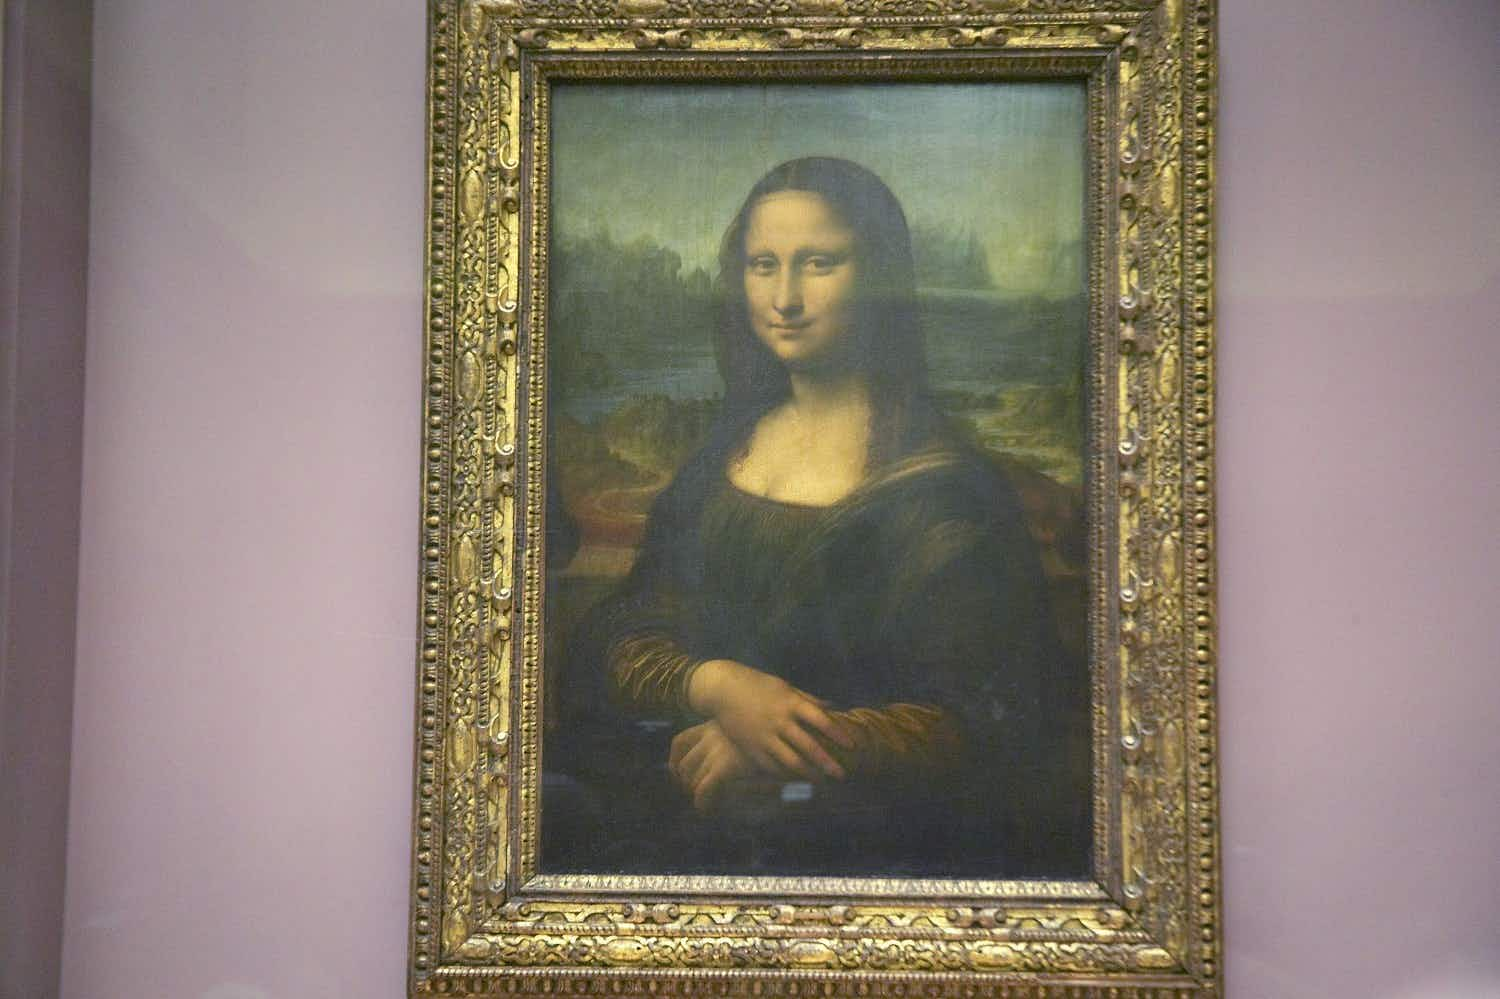 A Google app will now match your selfie with a famous piece of art